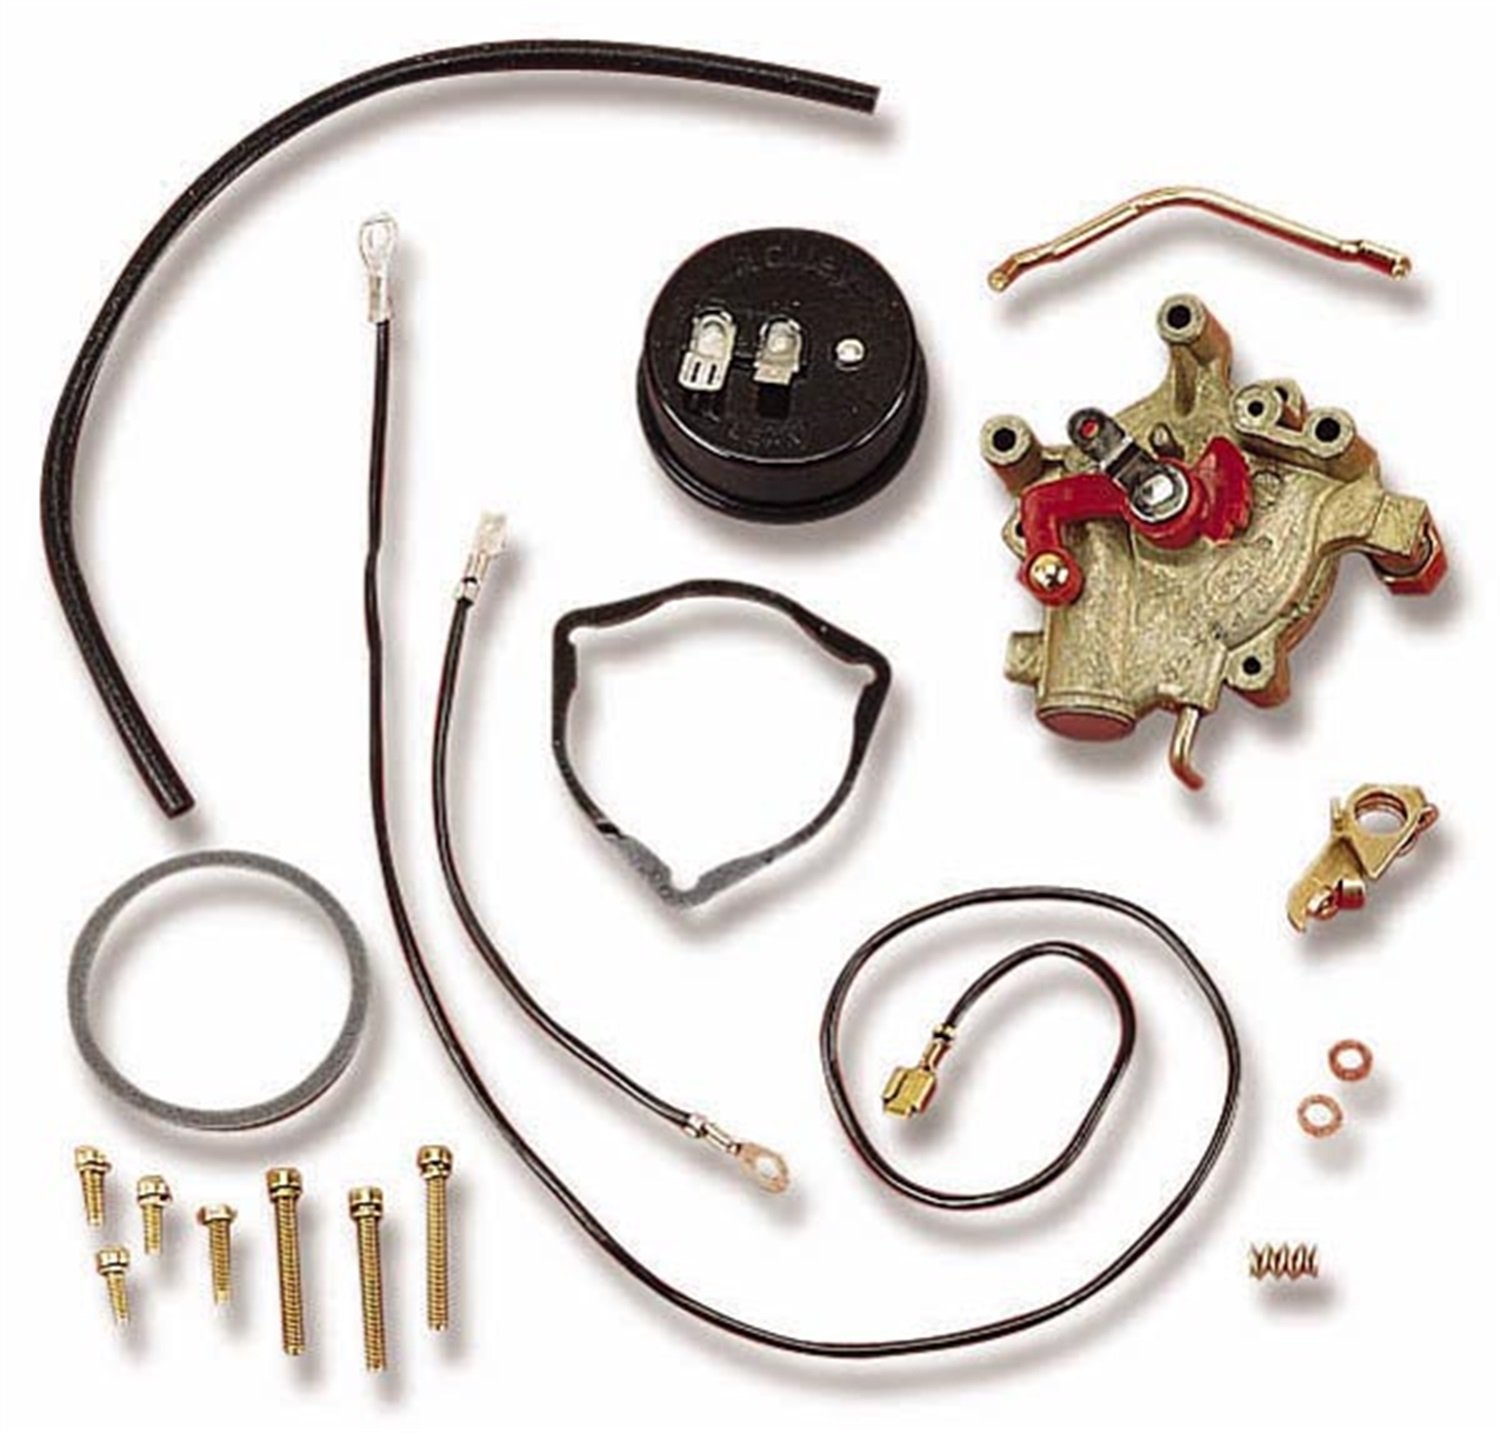 Holley 45-224 Electric Choke Conversion Kit HOL 45-224